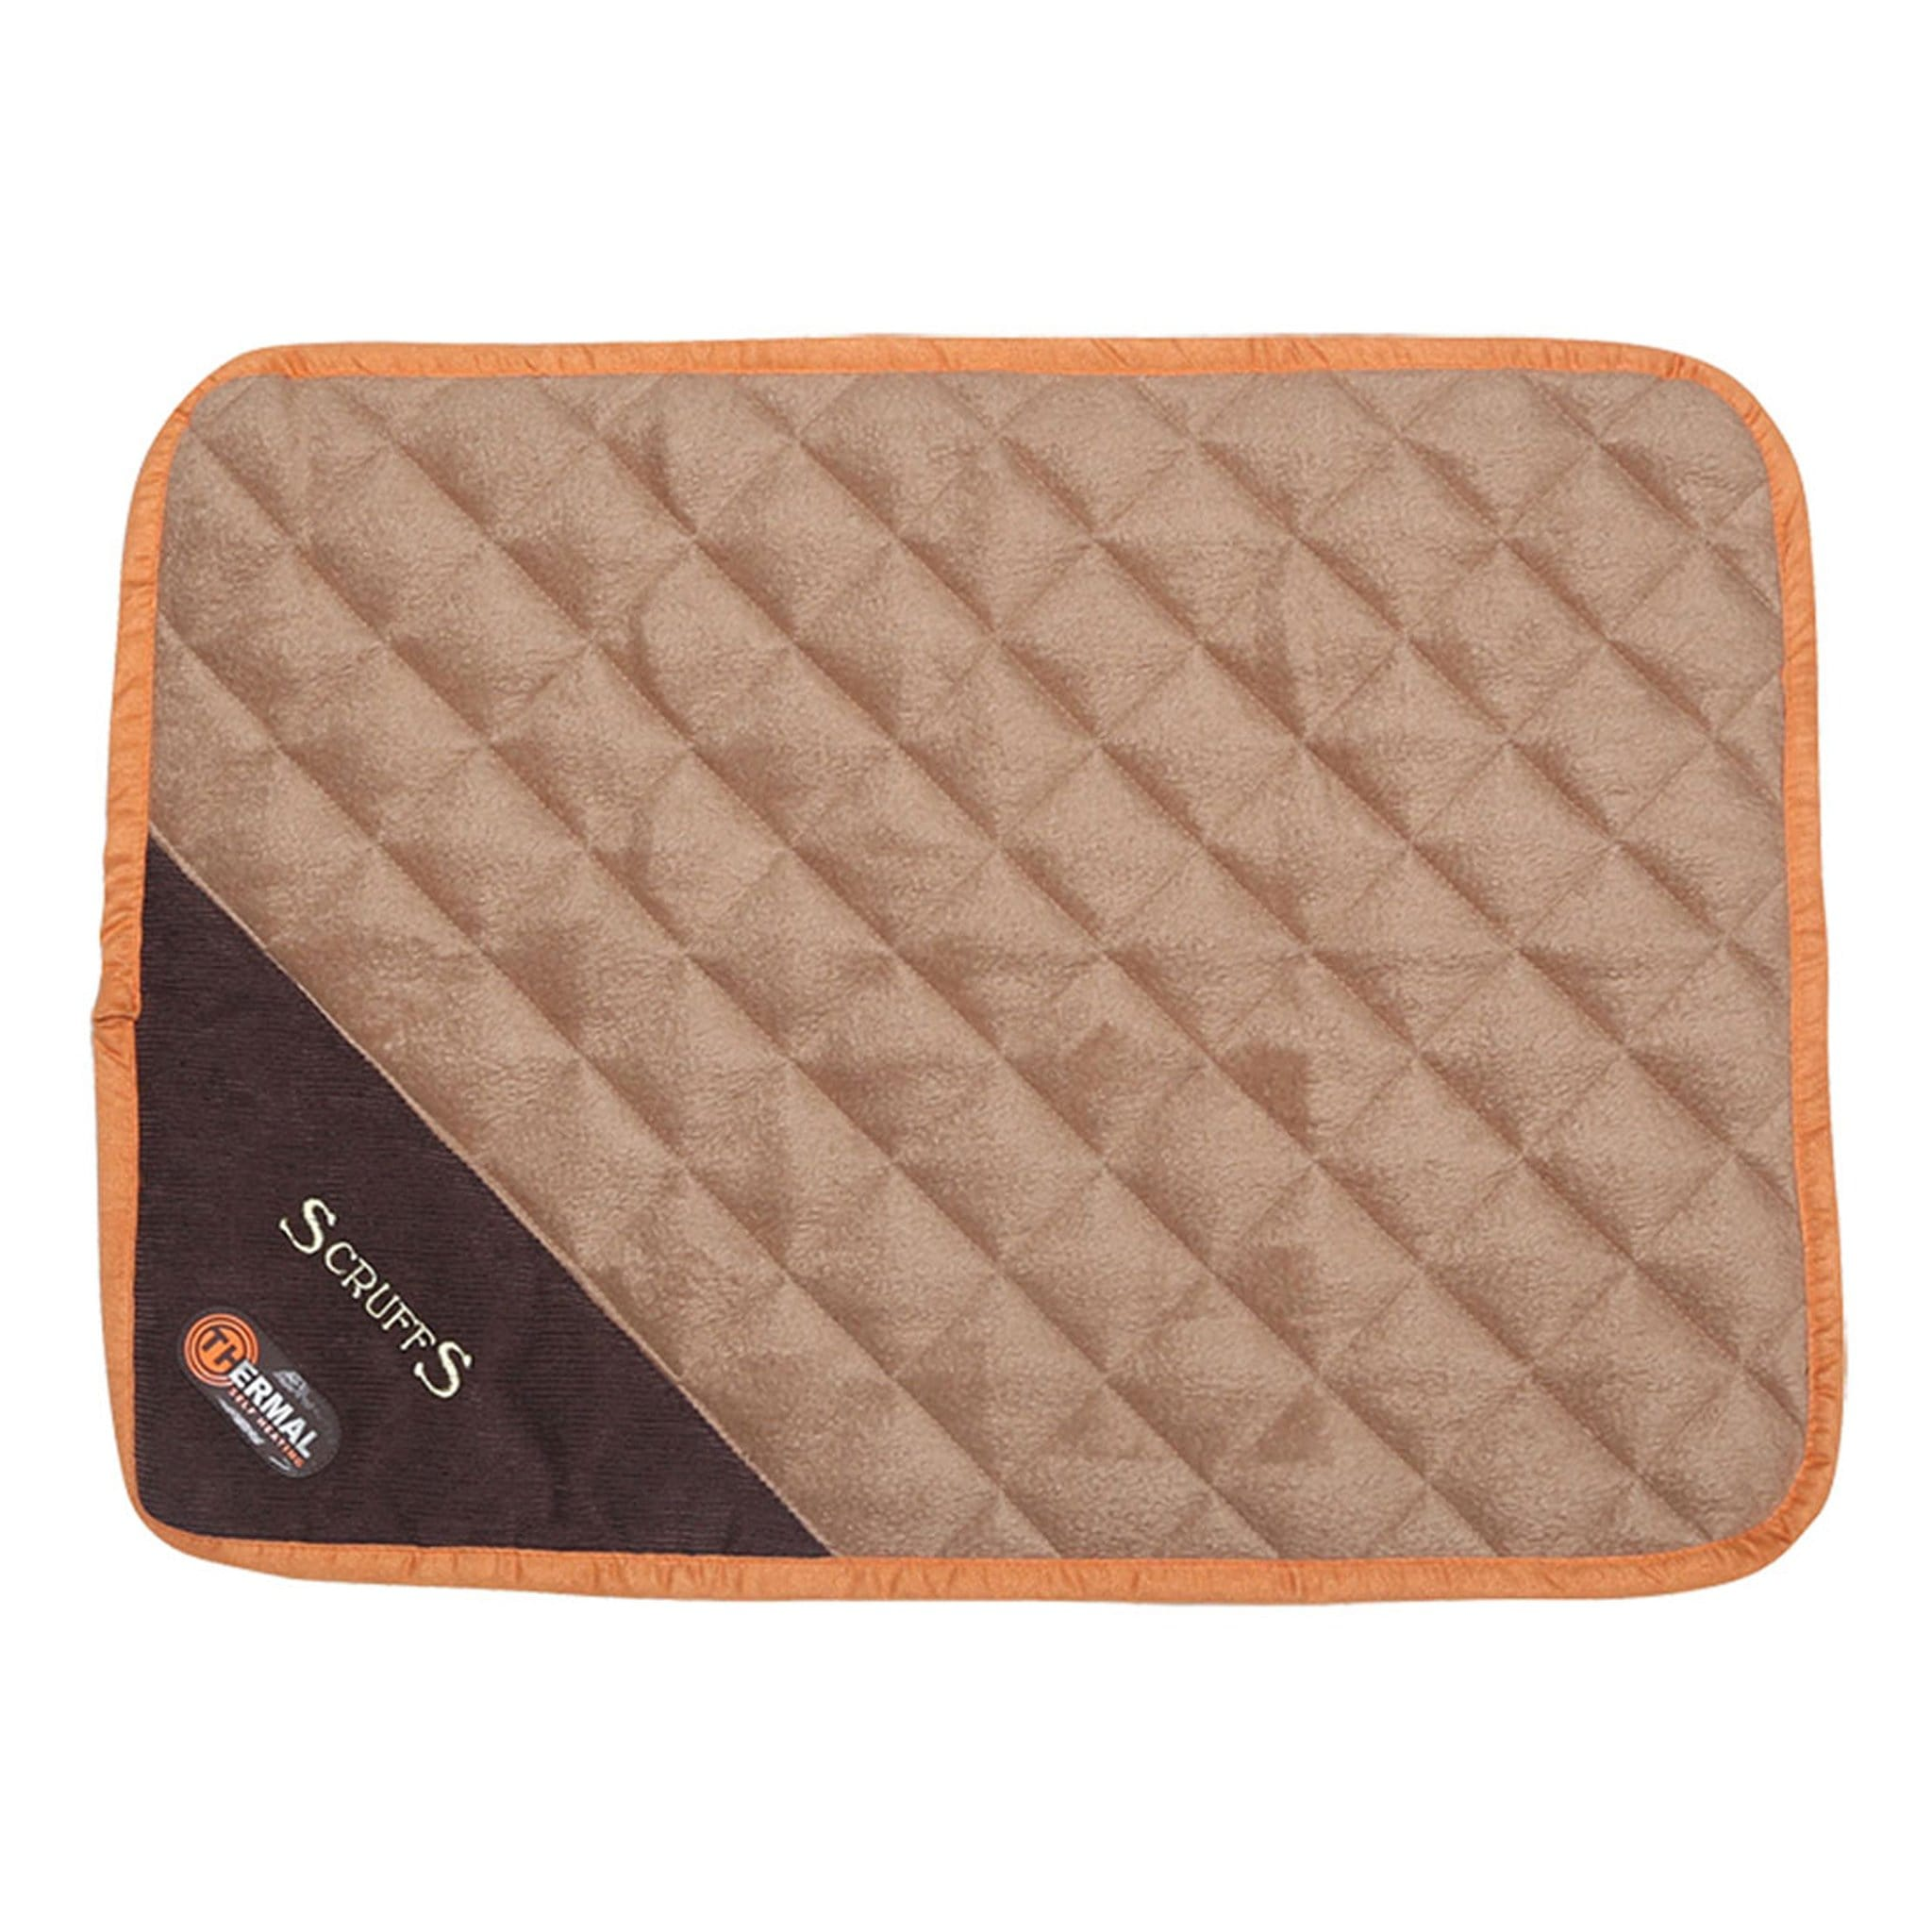 Scruffs Thermal Dog Mat 11680 Brown and Tan X-Small